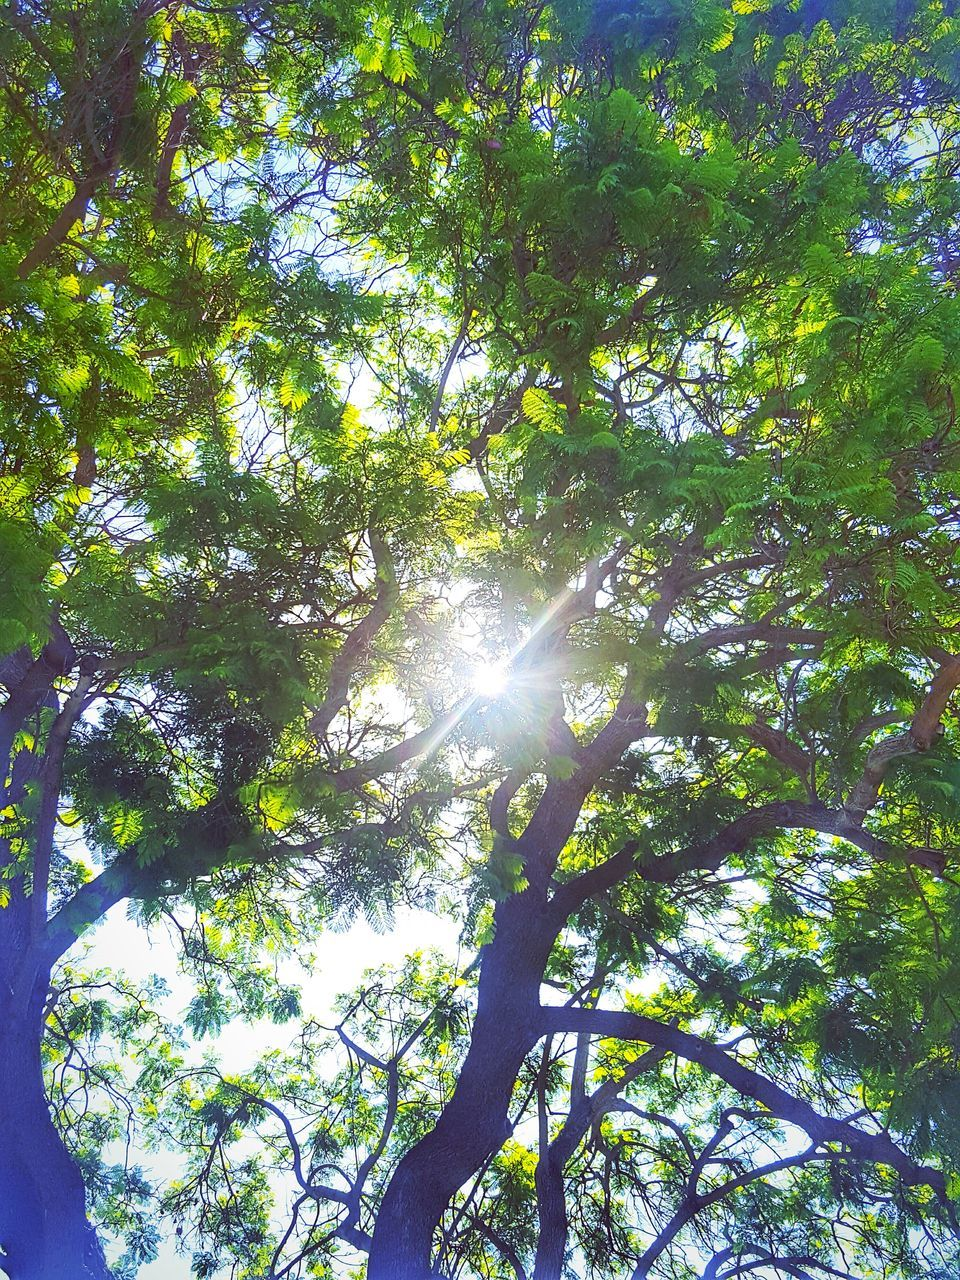 tree, low angle view, nature, sunlight, sunbeam, growth, lens flare, tranquility, day, forest, sun, no people, outdoors, tranquil scene, beauty in nature, branch, scenics, sky